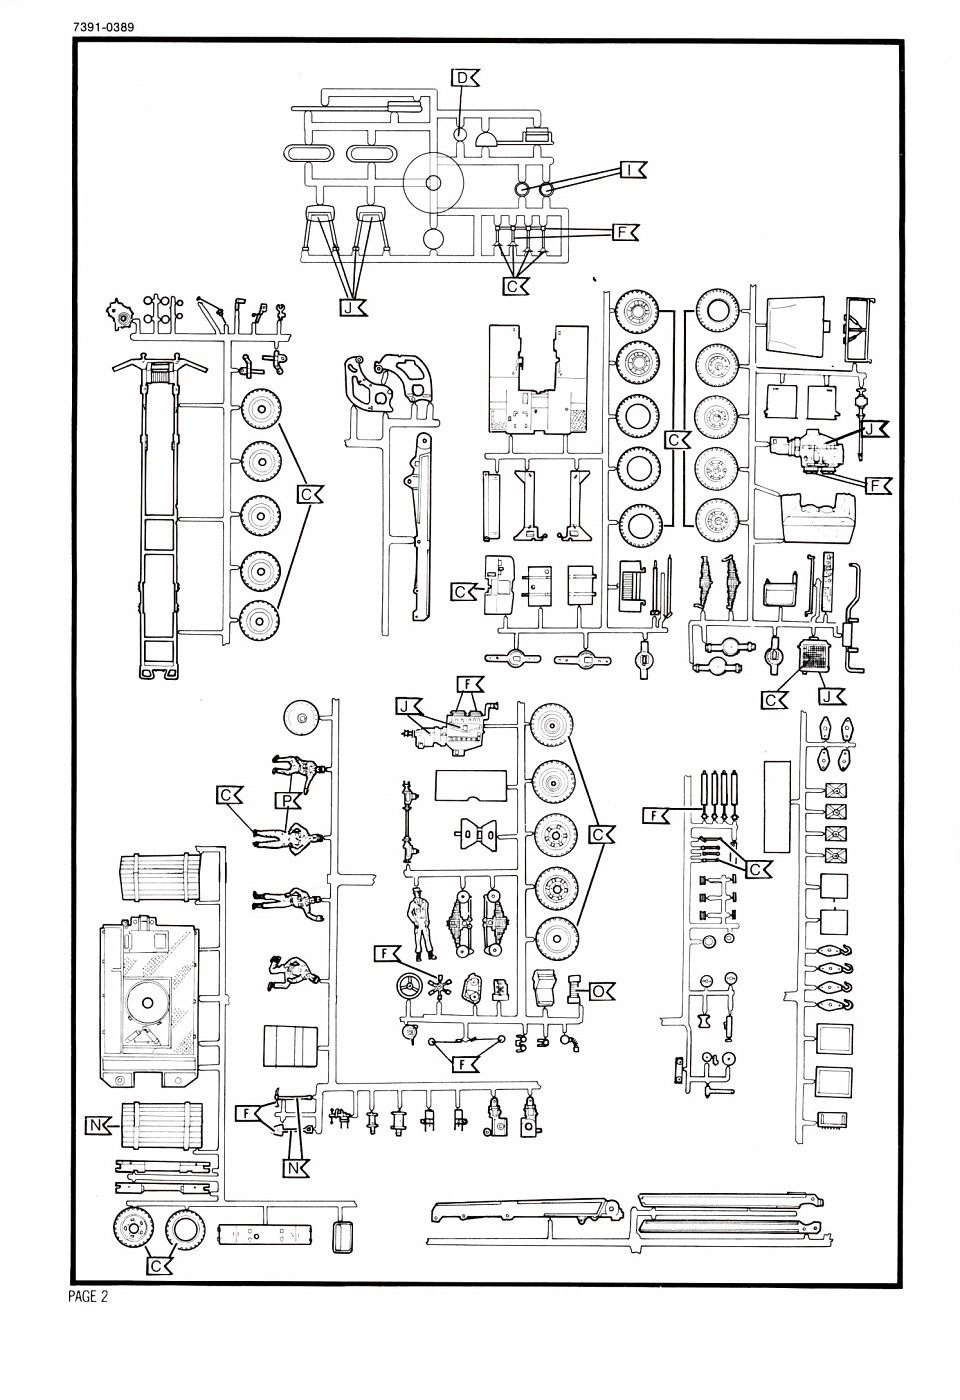 kenworth t660 headlight wiring diagram network security architecture best library 2012 t800 adjustment 2011